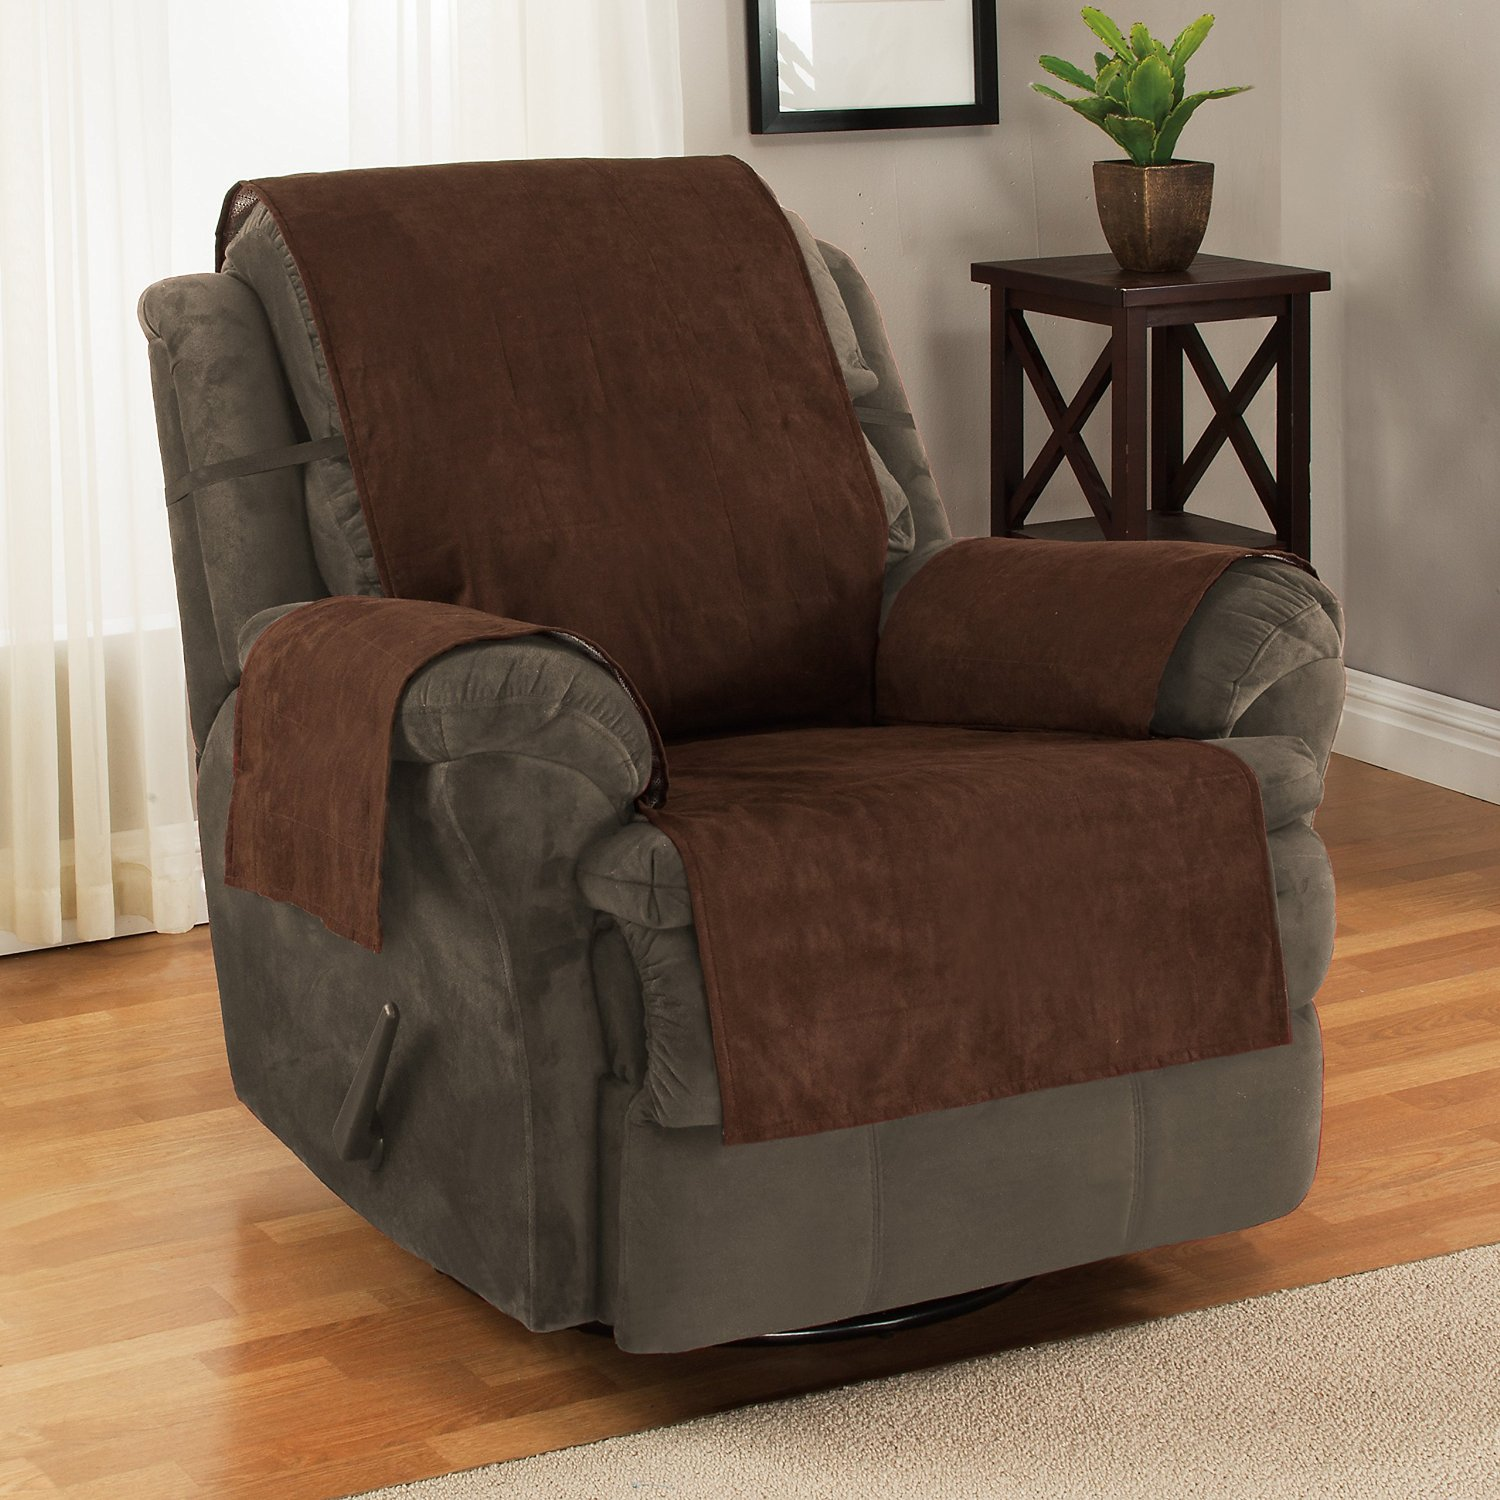 Lazy Boy Chair Covers Lazyboy Recliners Review And Guide Online